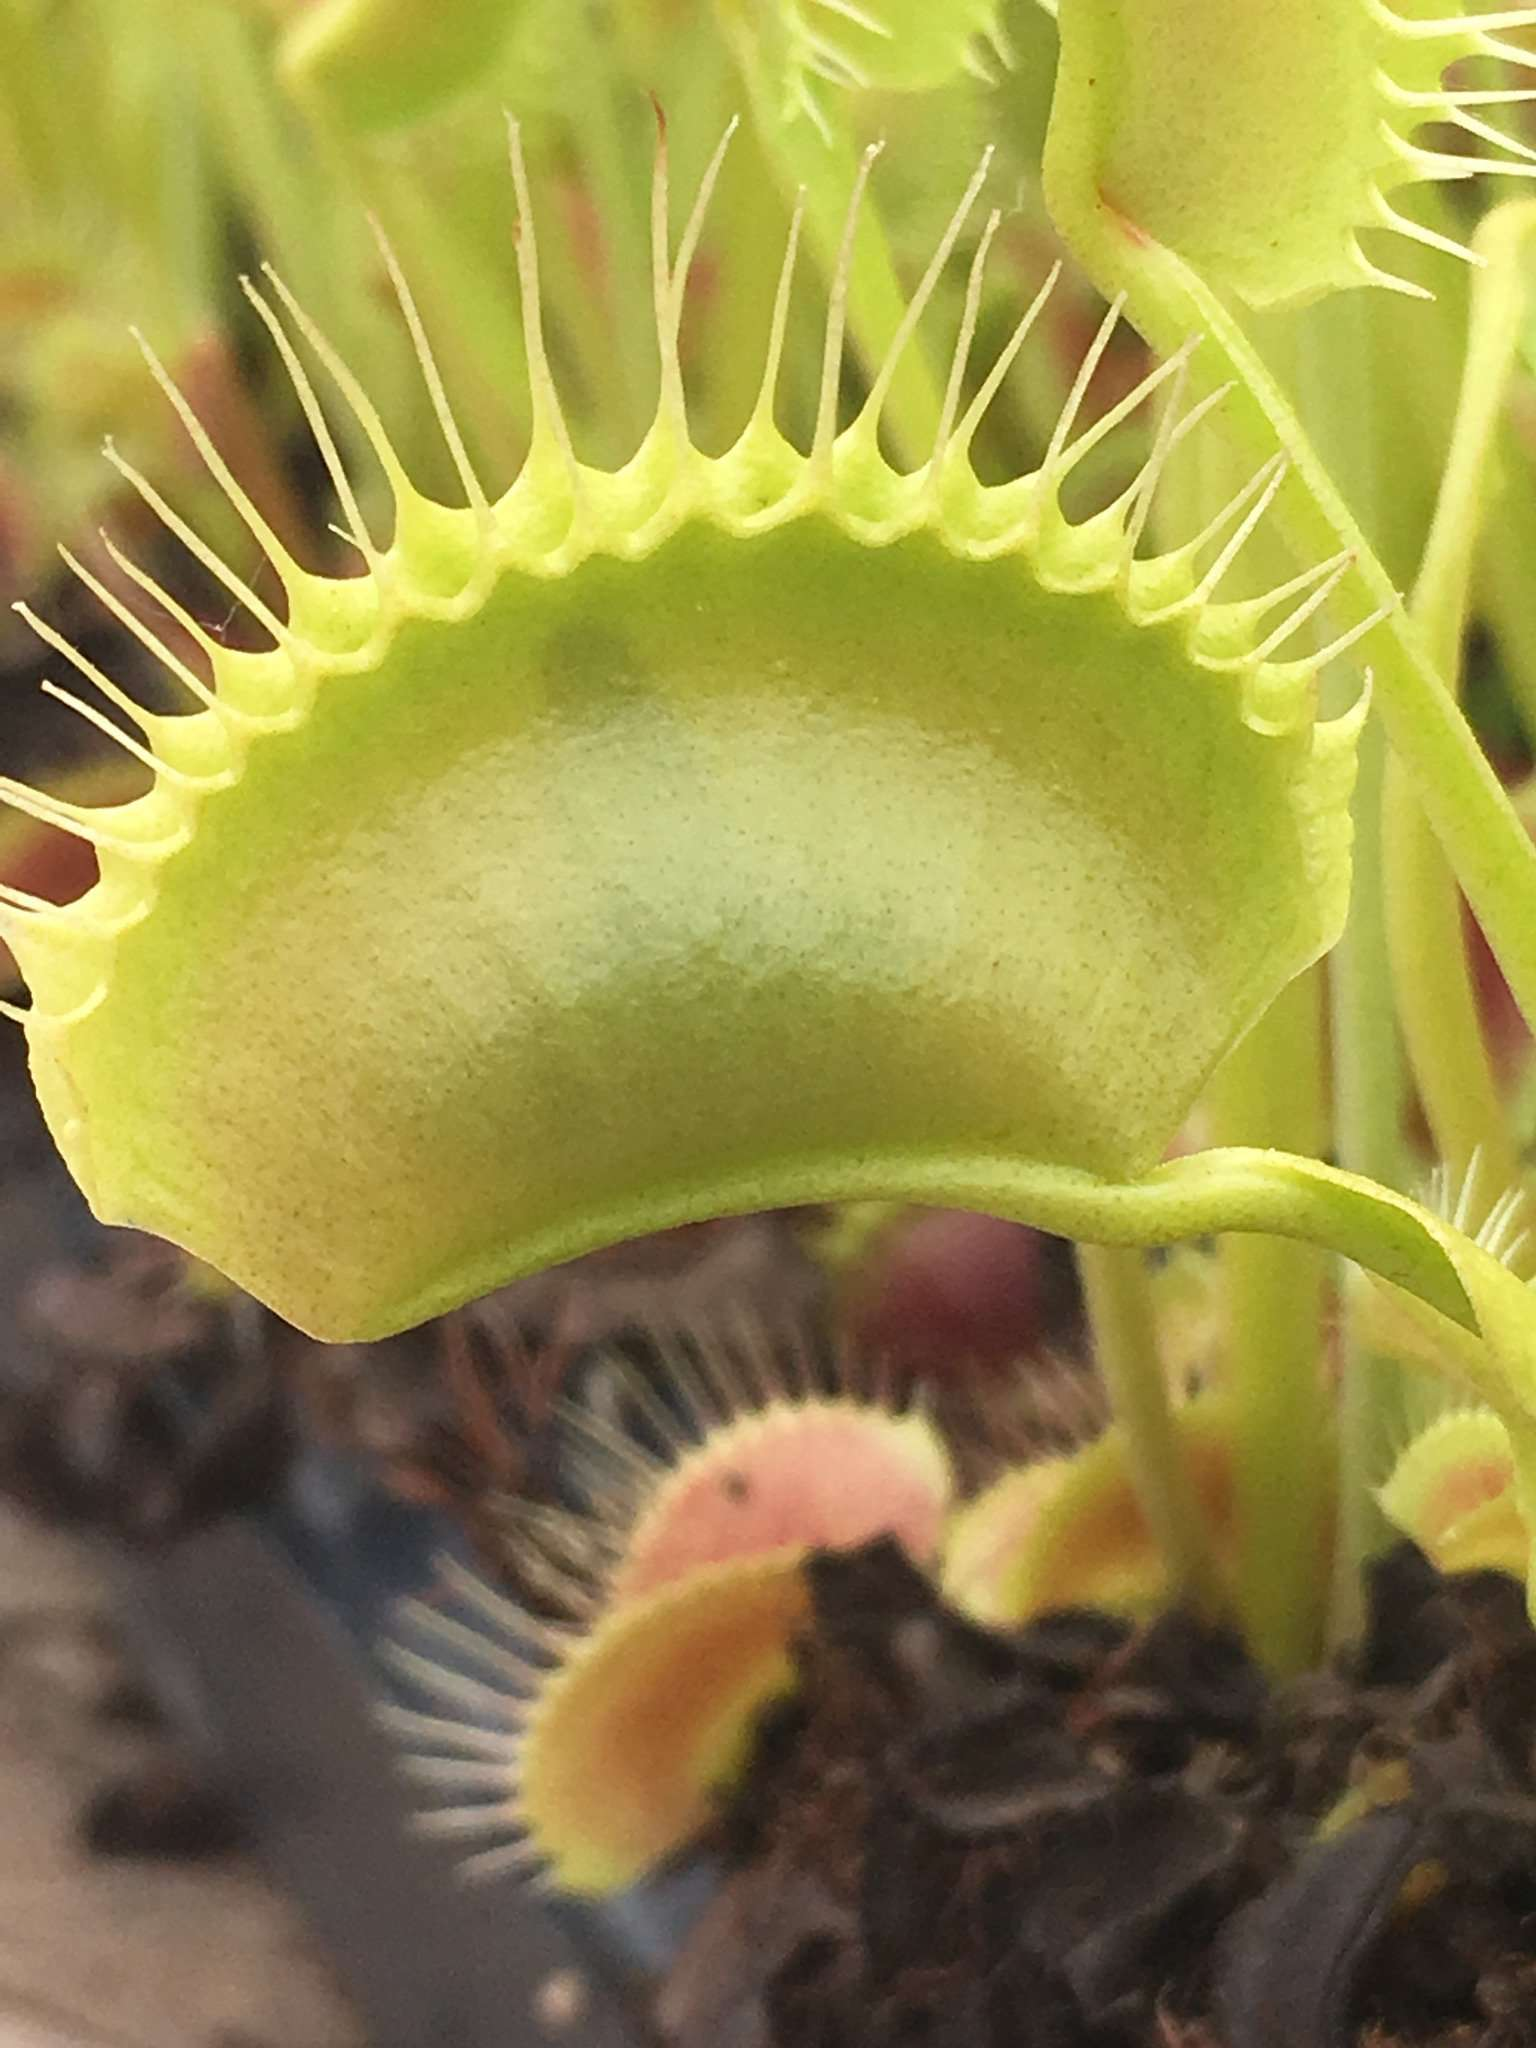 Venus flytrap with food